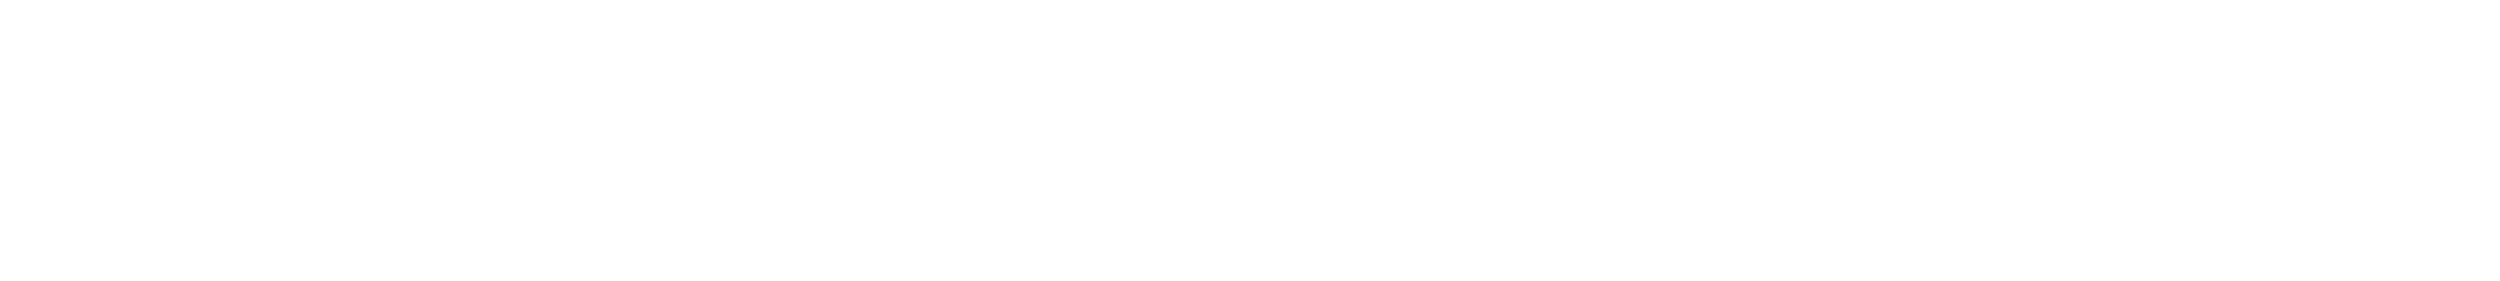 create-beauty2.png